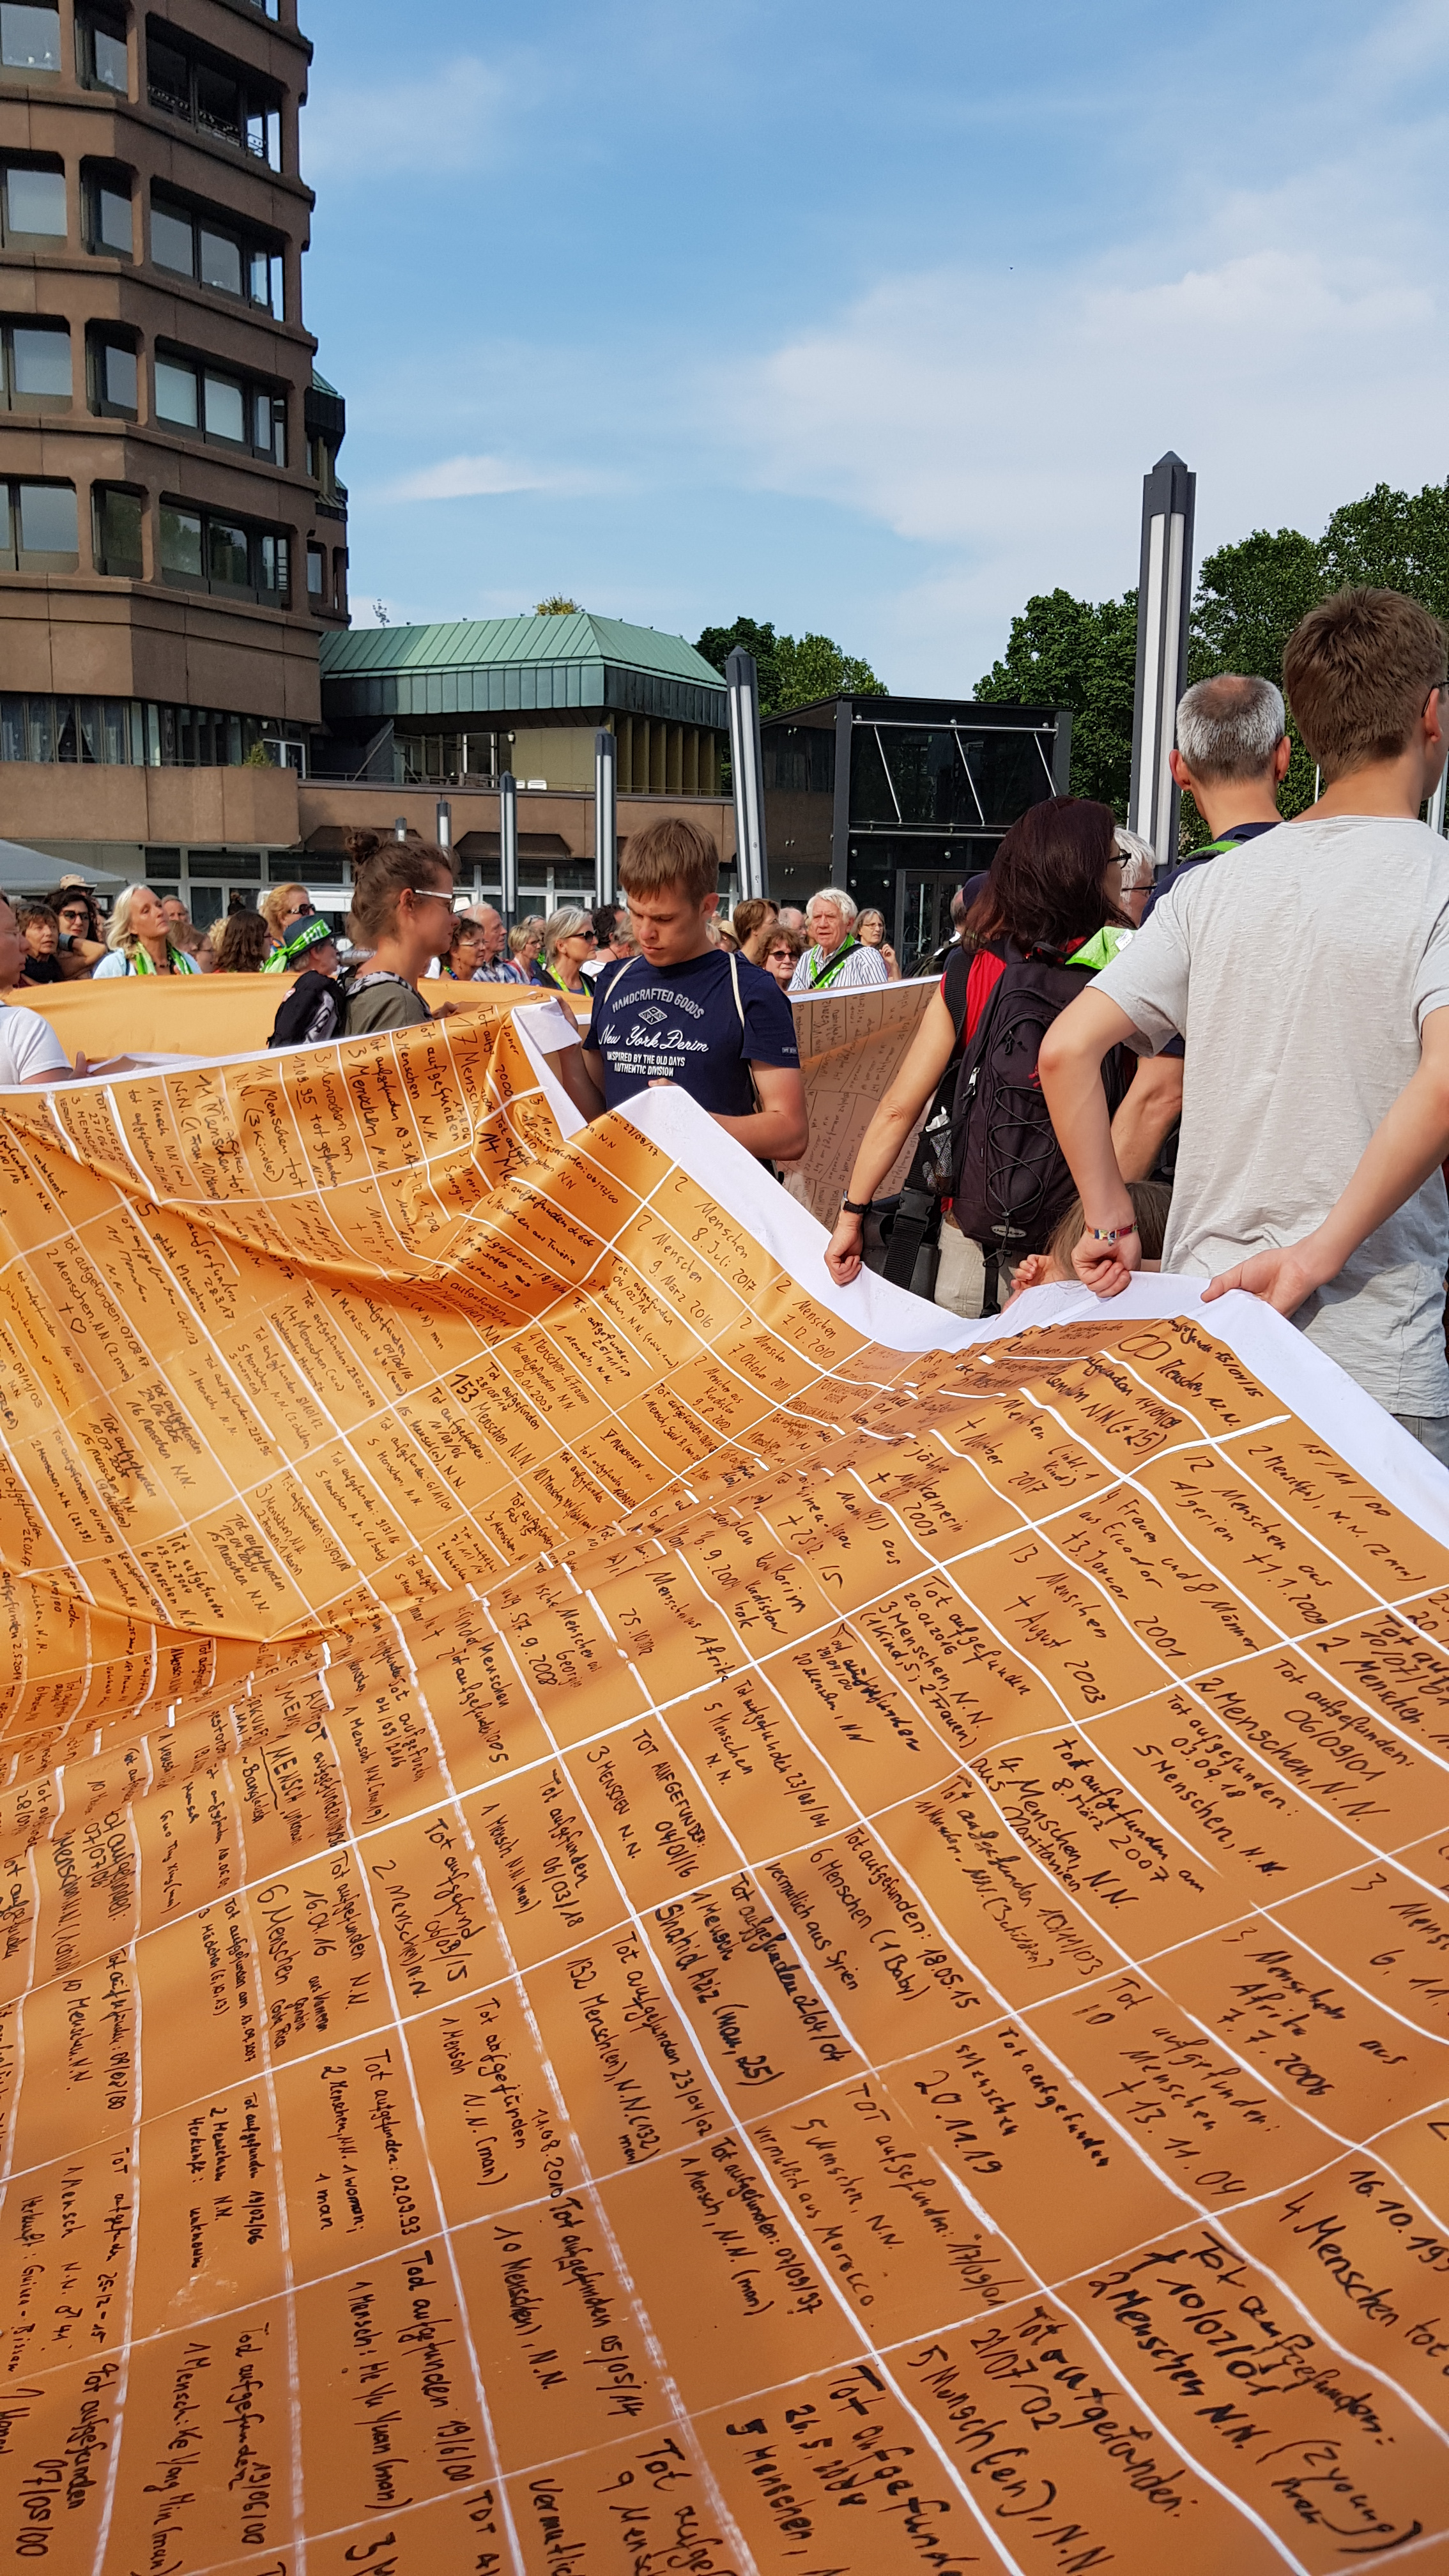 We are carrying a large banner with names of drowned refugees through the city of Dortmund during a silent demonstration at the German Kirchentag.